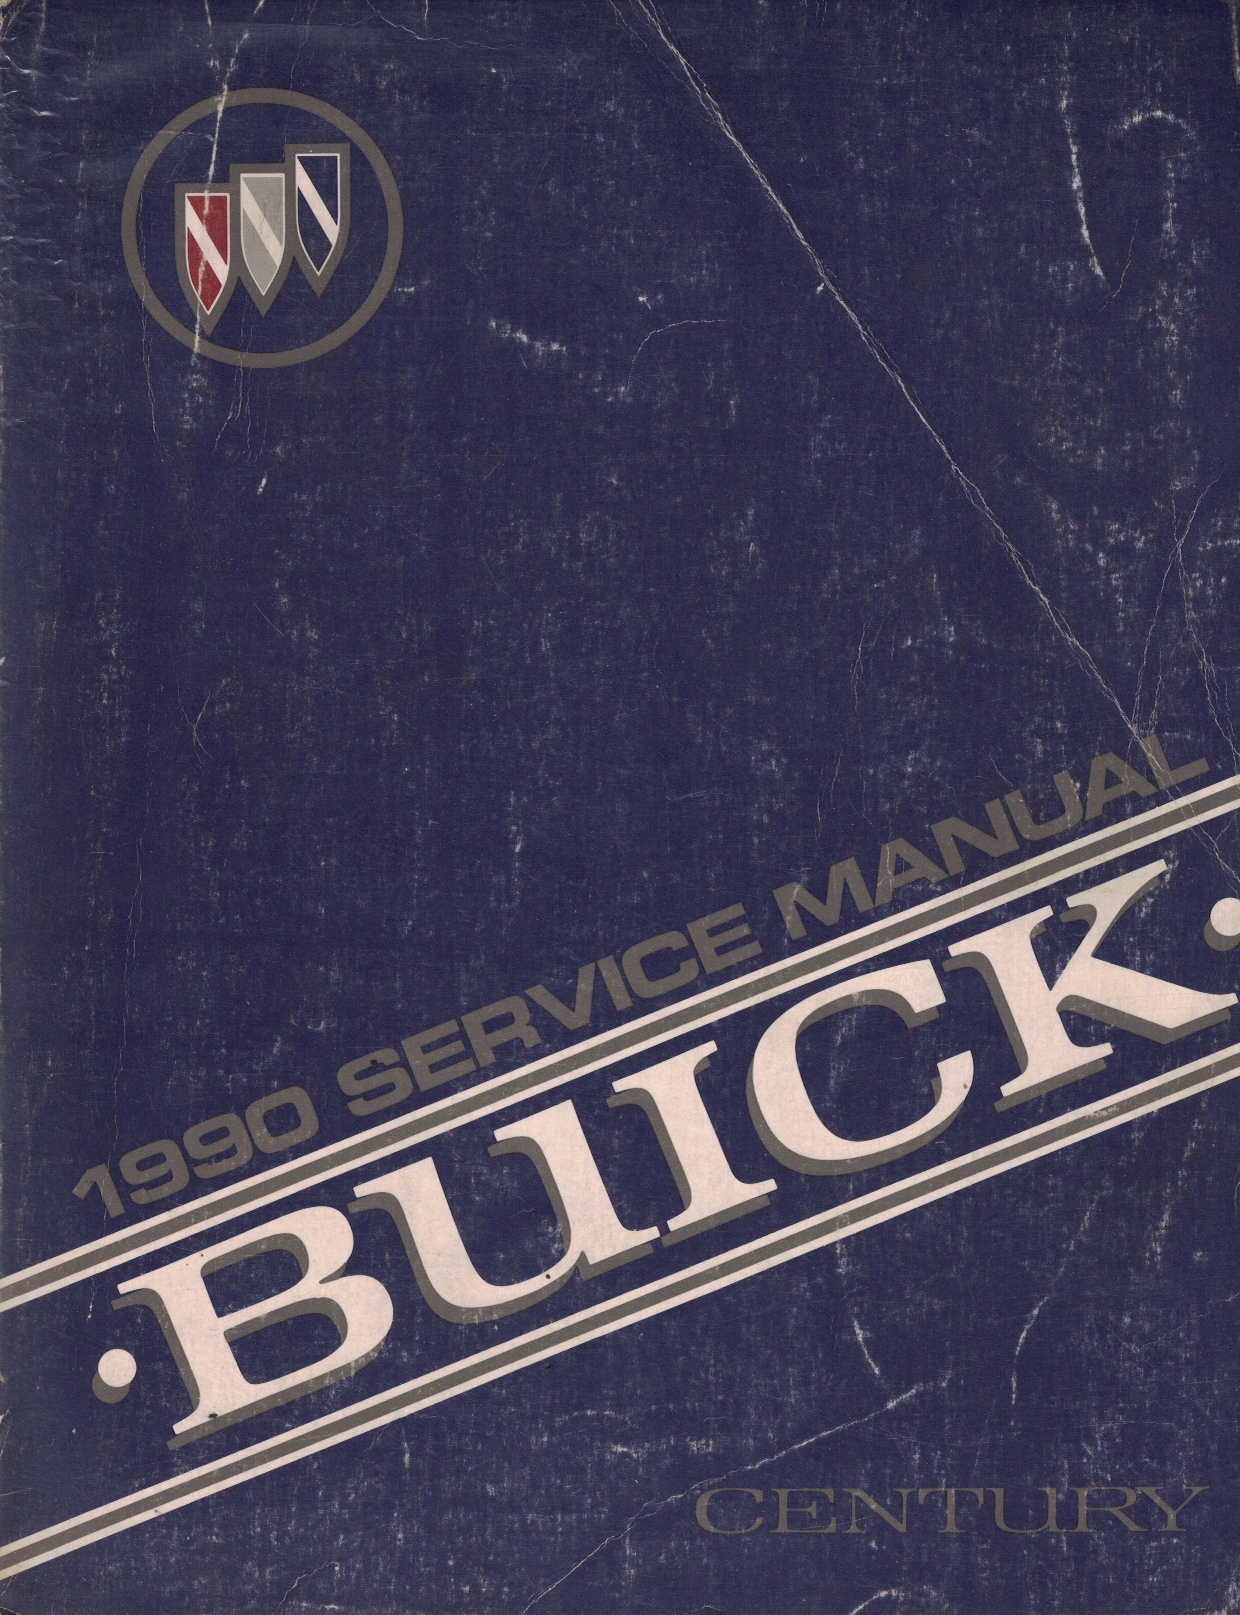 Image for 1990 Buick Century Service Manual